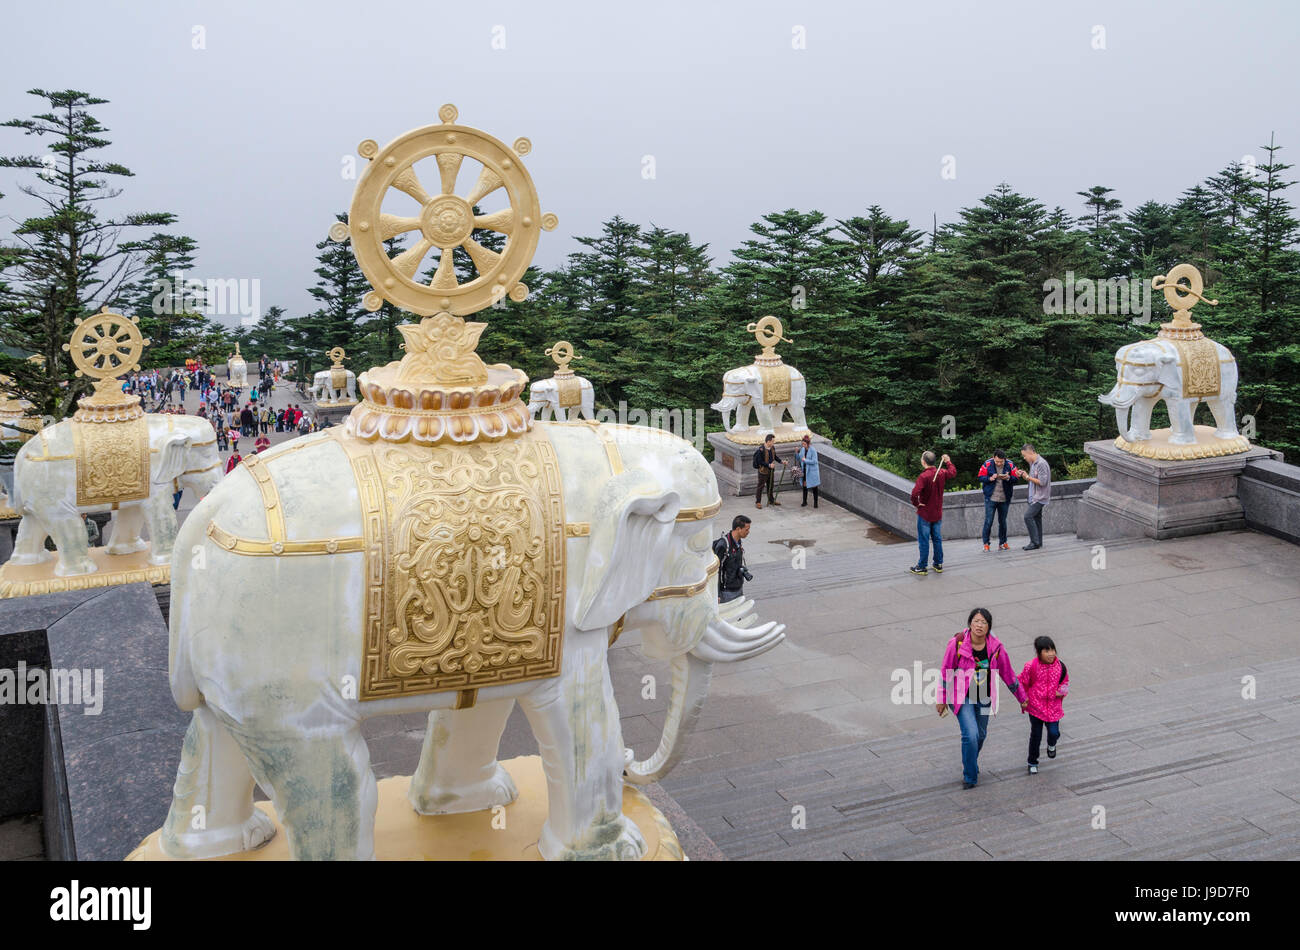 Emei Shan, UNESCO World Heritage Site, Sichuan Province, China, Asia - Stock Image